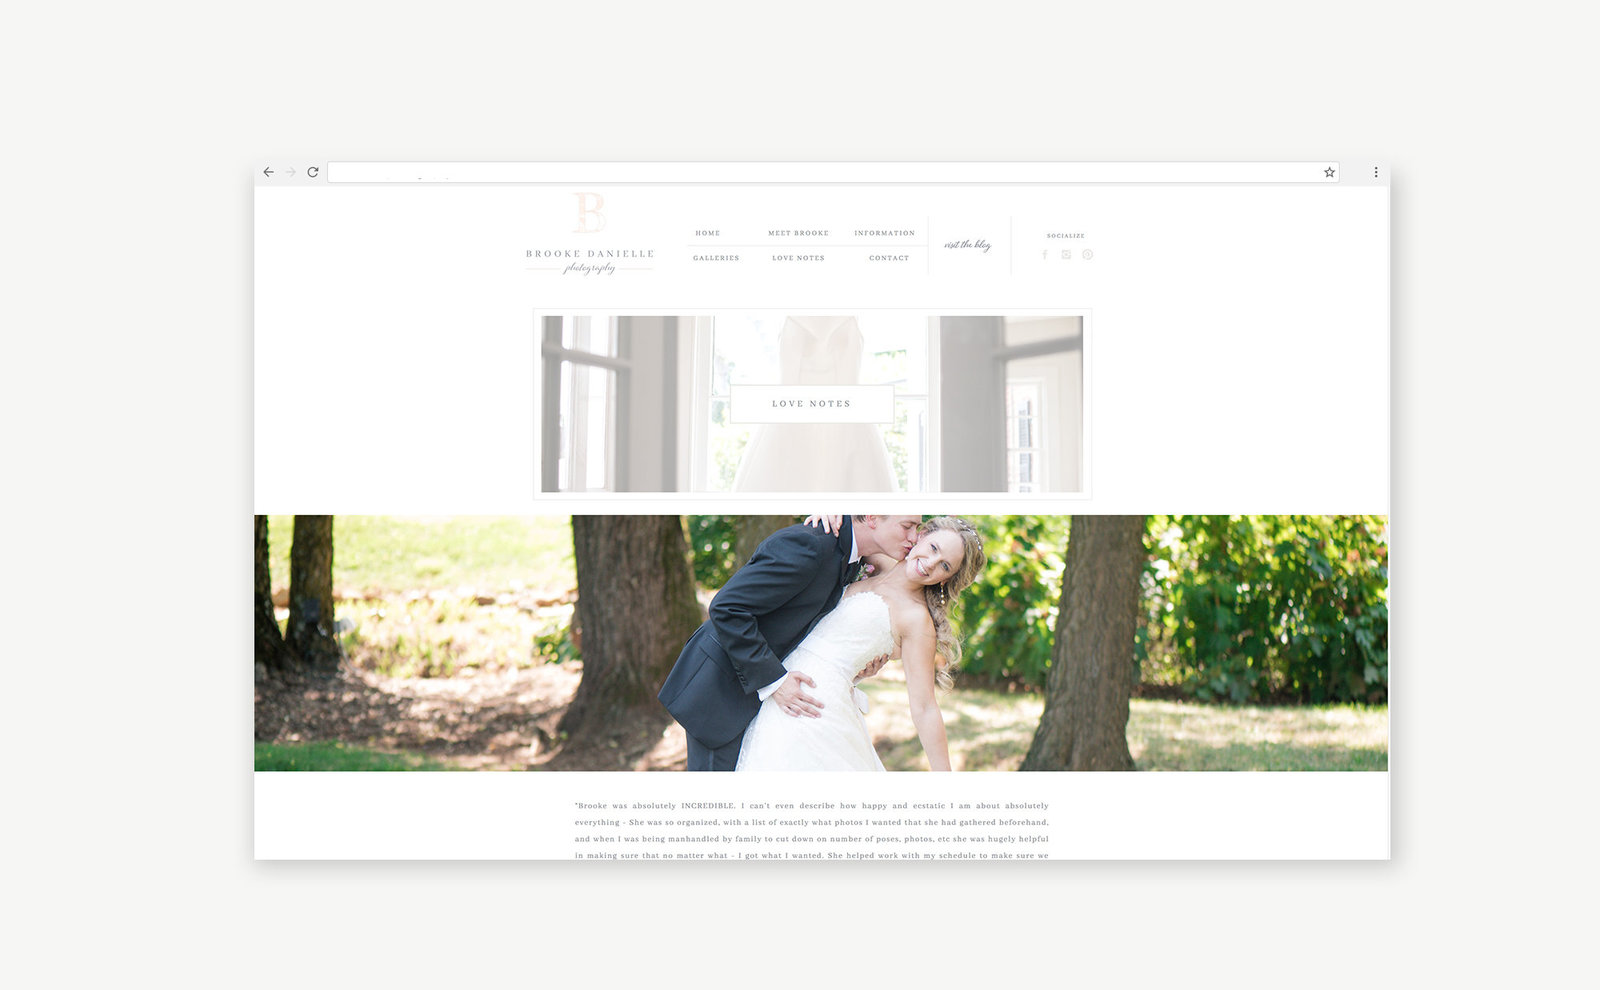 branding-for-photographers-web-design-brooke-danielle-07